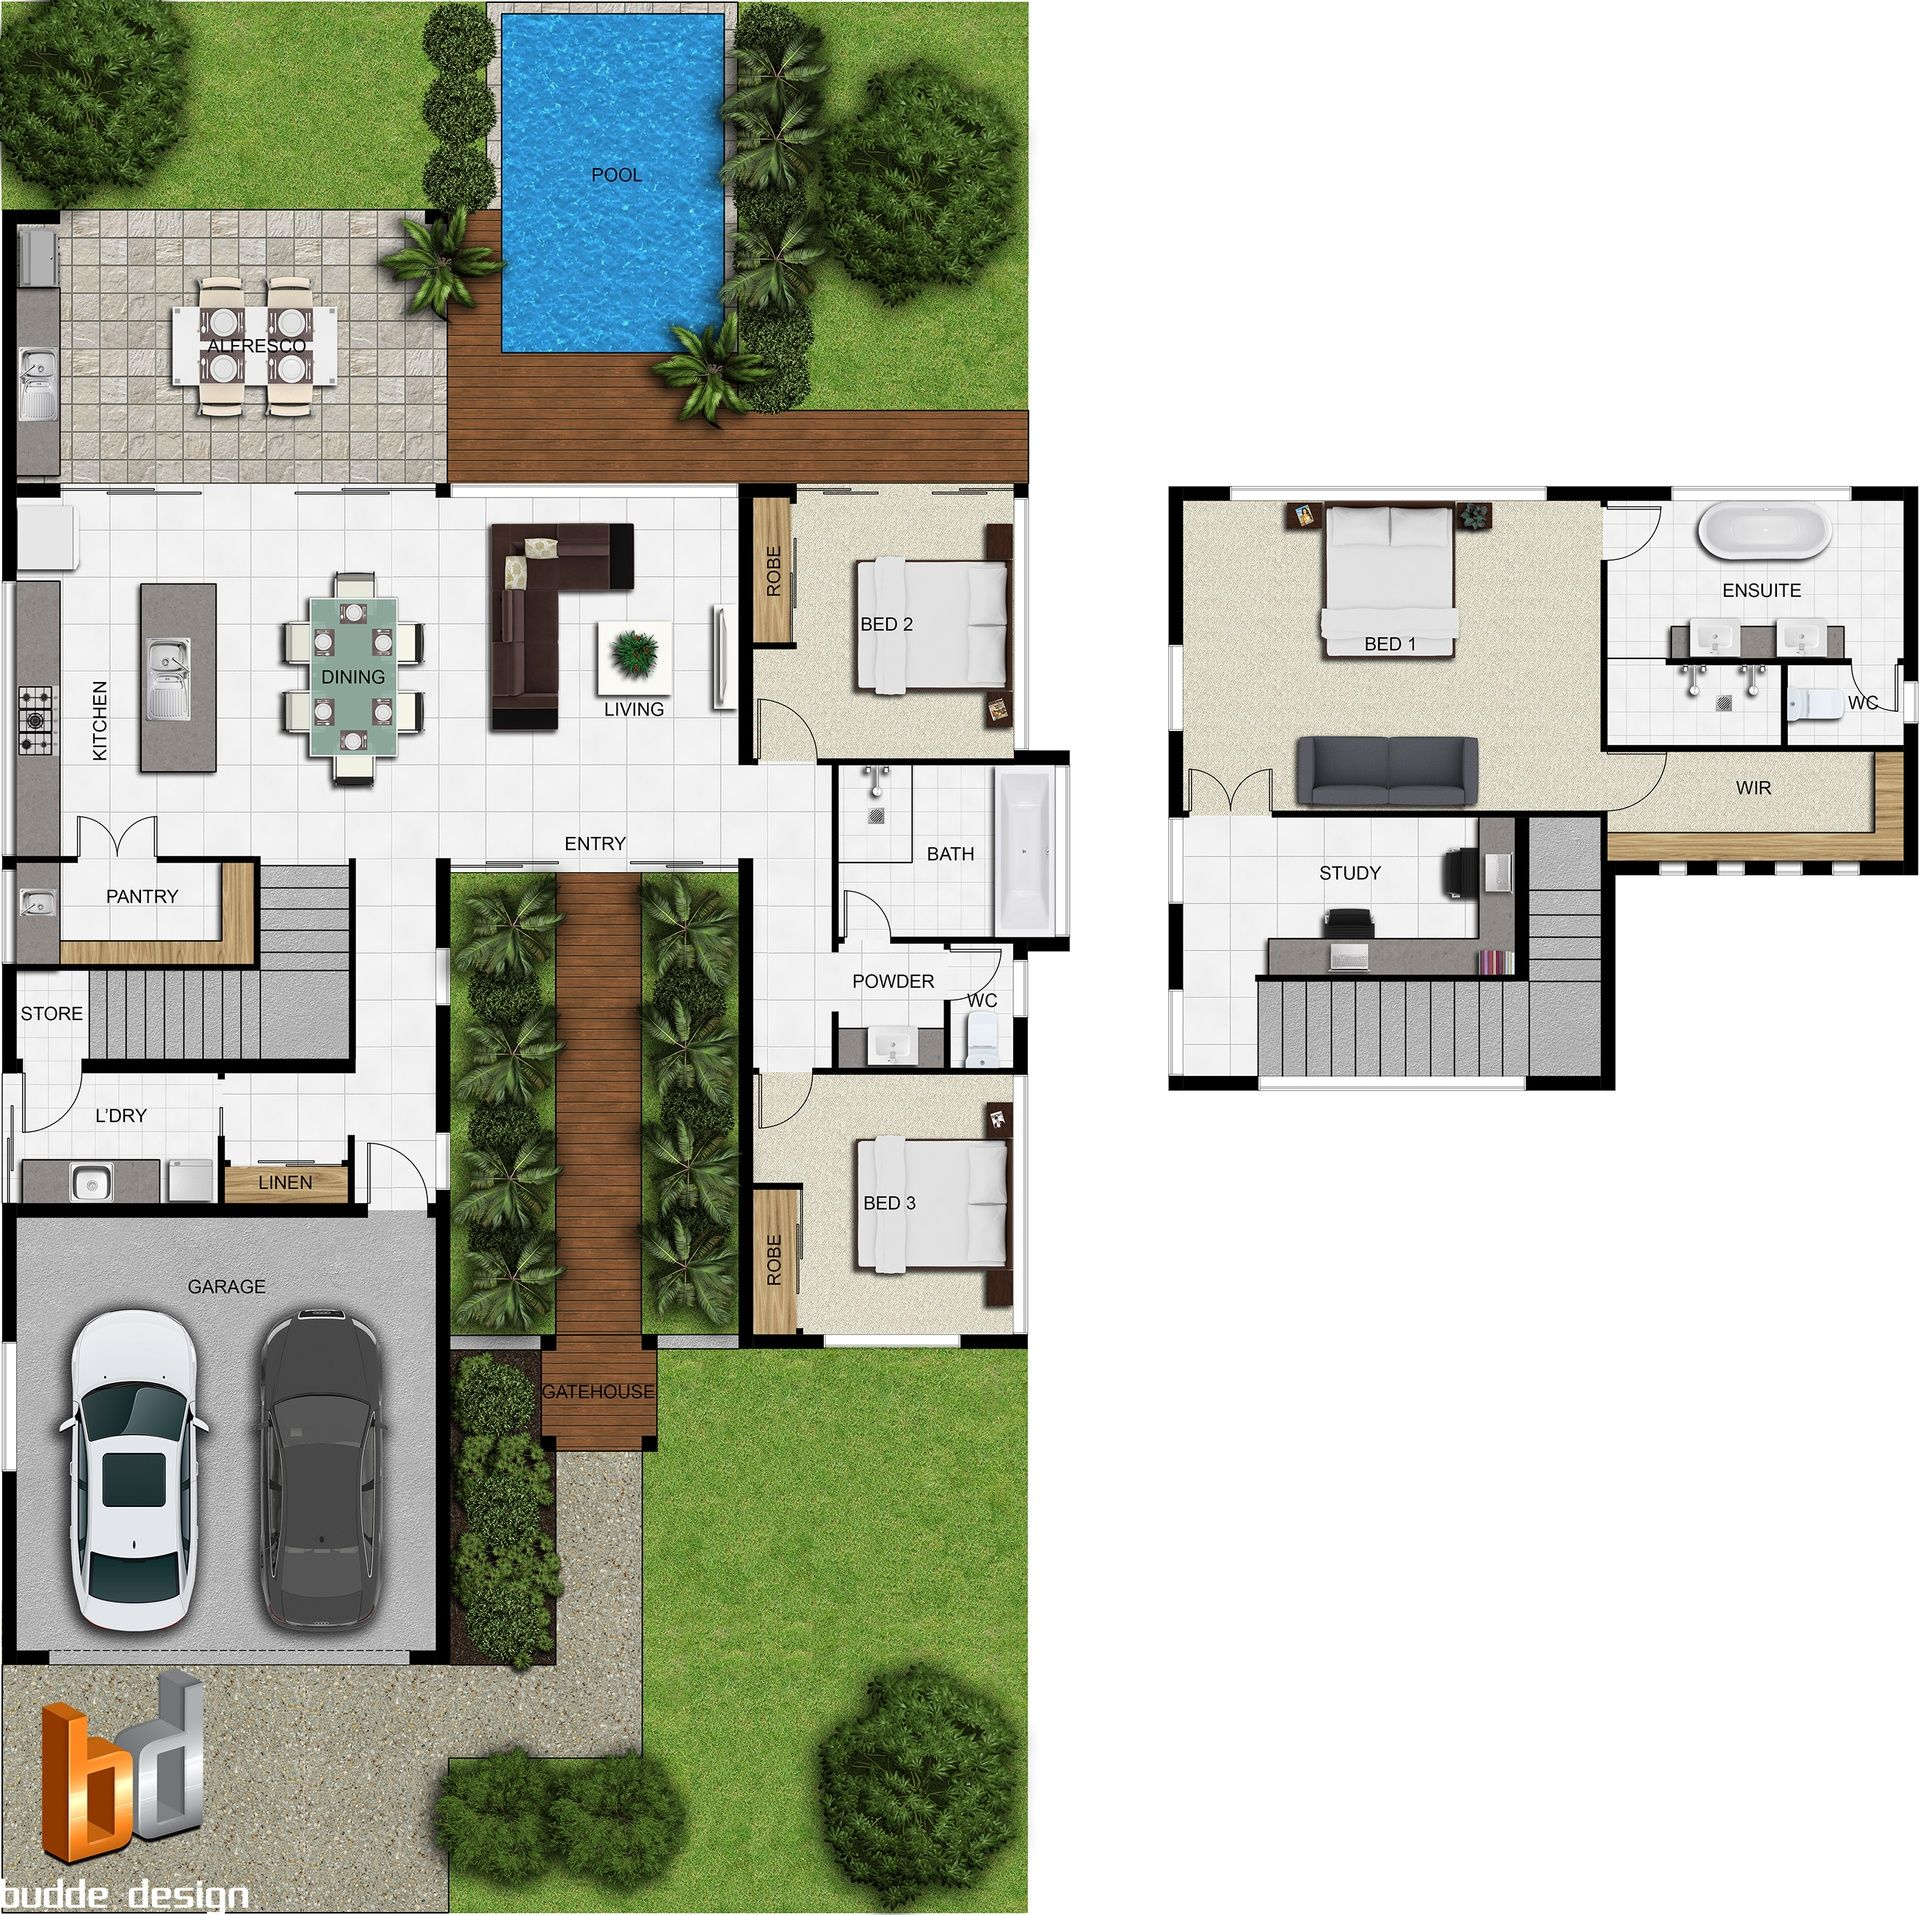 Create High Quality Professional And Realistic 2d Colour Floor Plans From Our Specifically Produced Ra Architectural Floor Plans Floor Plans House Floor Plans